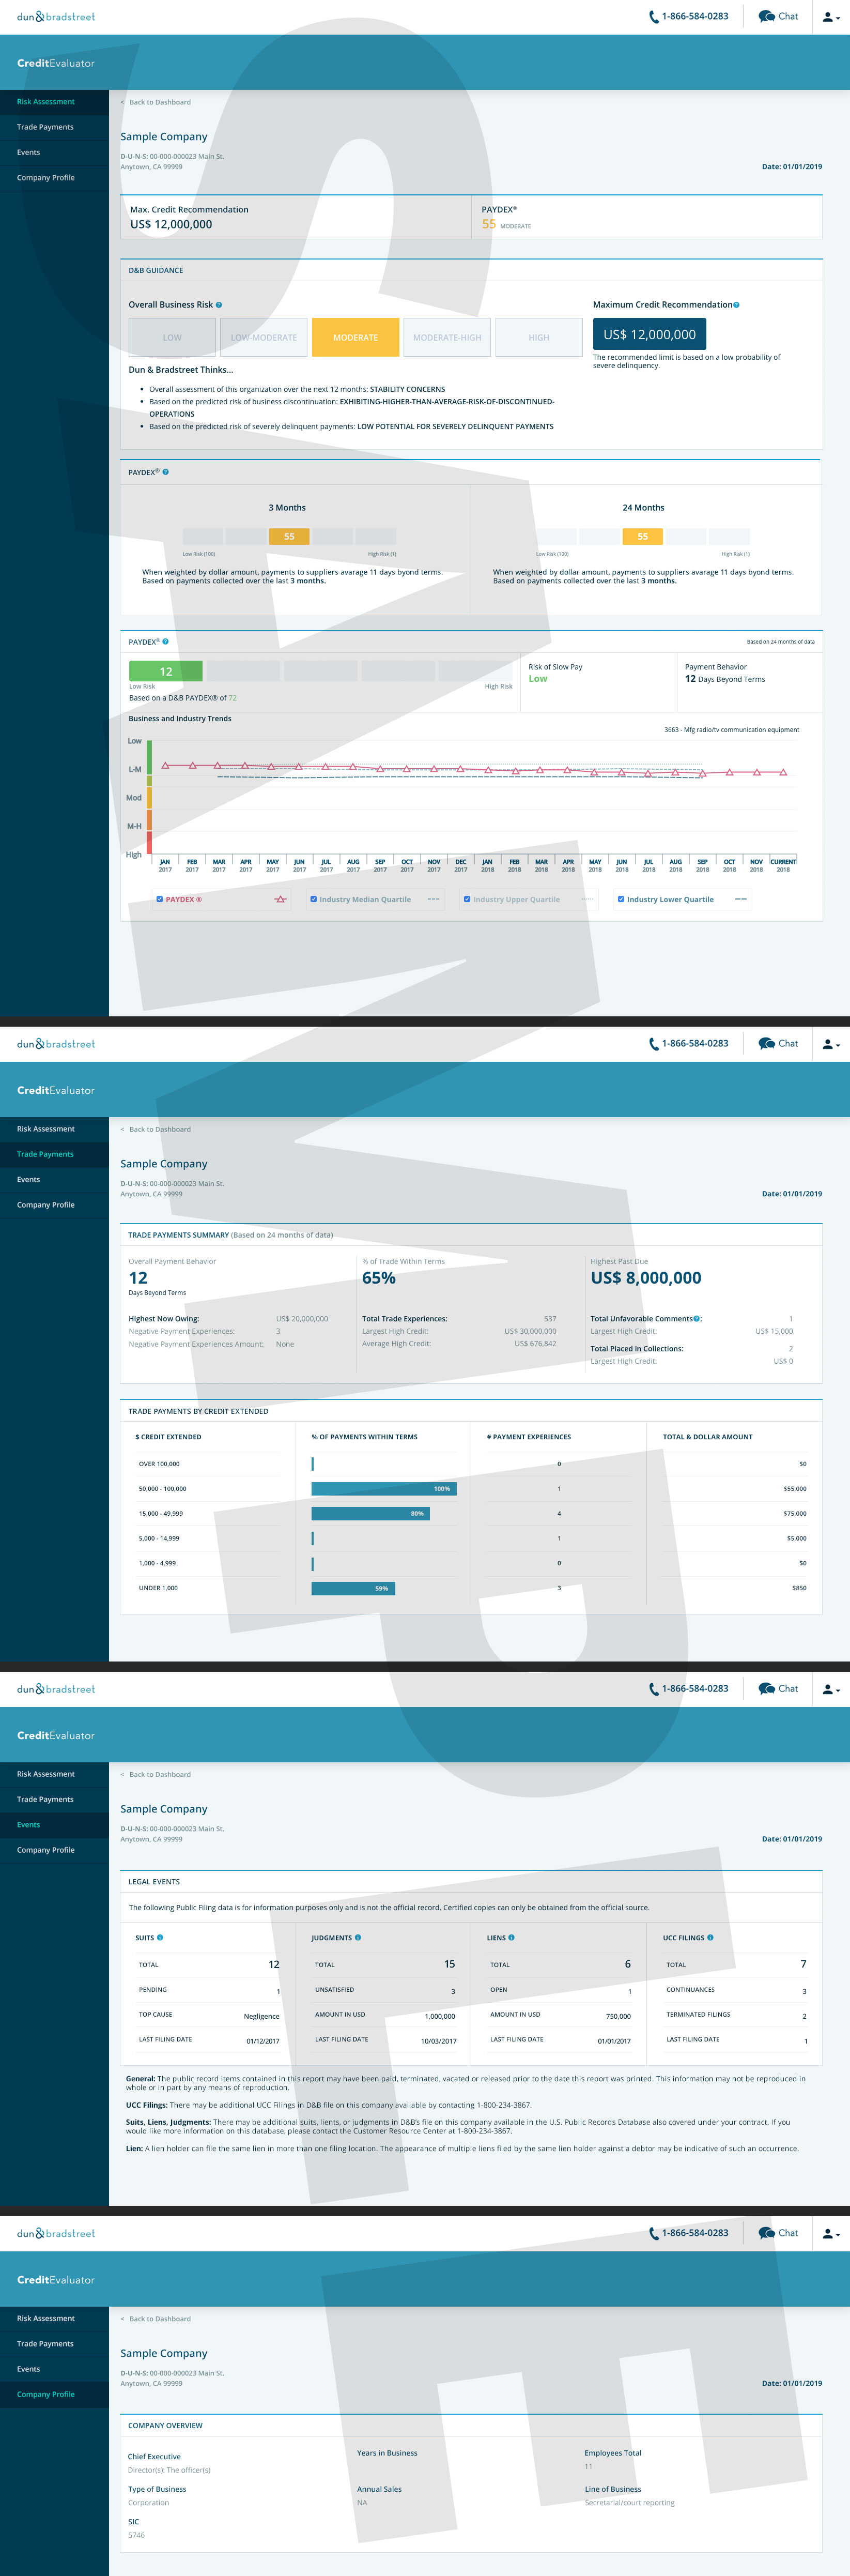 Credit Evaluator Plus report quickly helps determine a company's risk of late payment and identify how much credit to extend based on a company's D&B PAYDEX Score, D&B Maximum Credit Recommendation, and past payment behavior